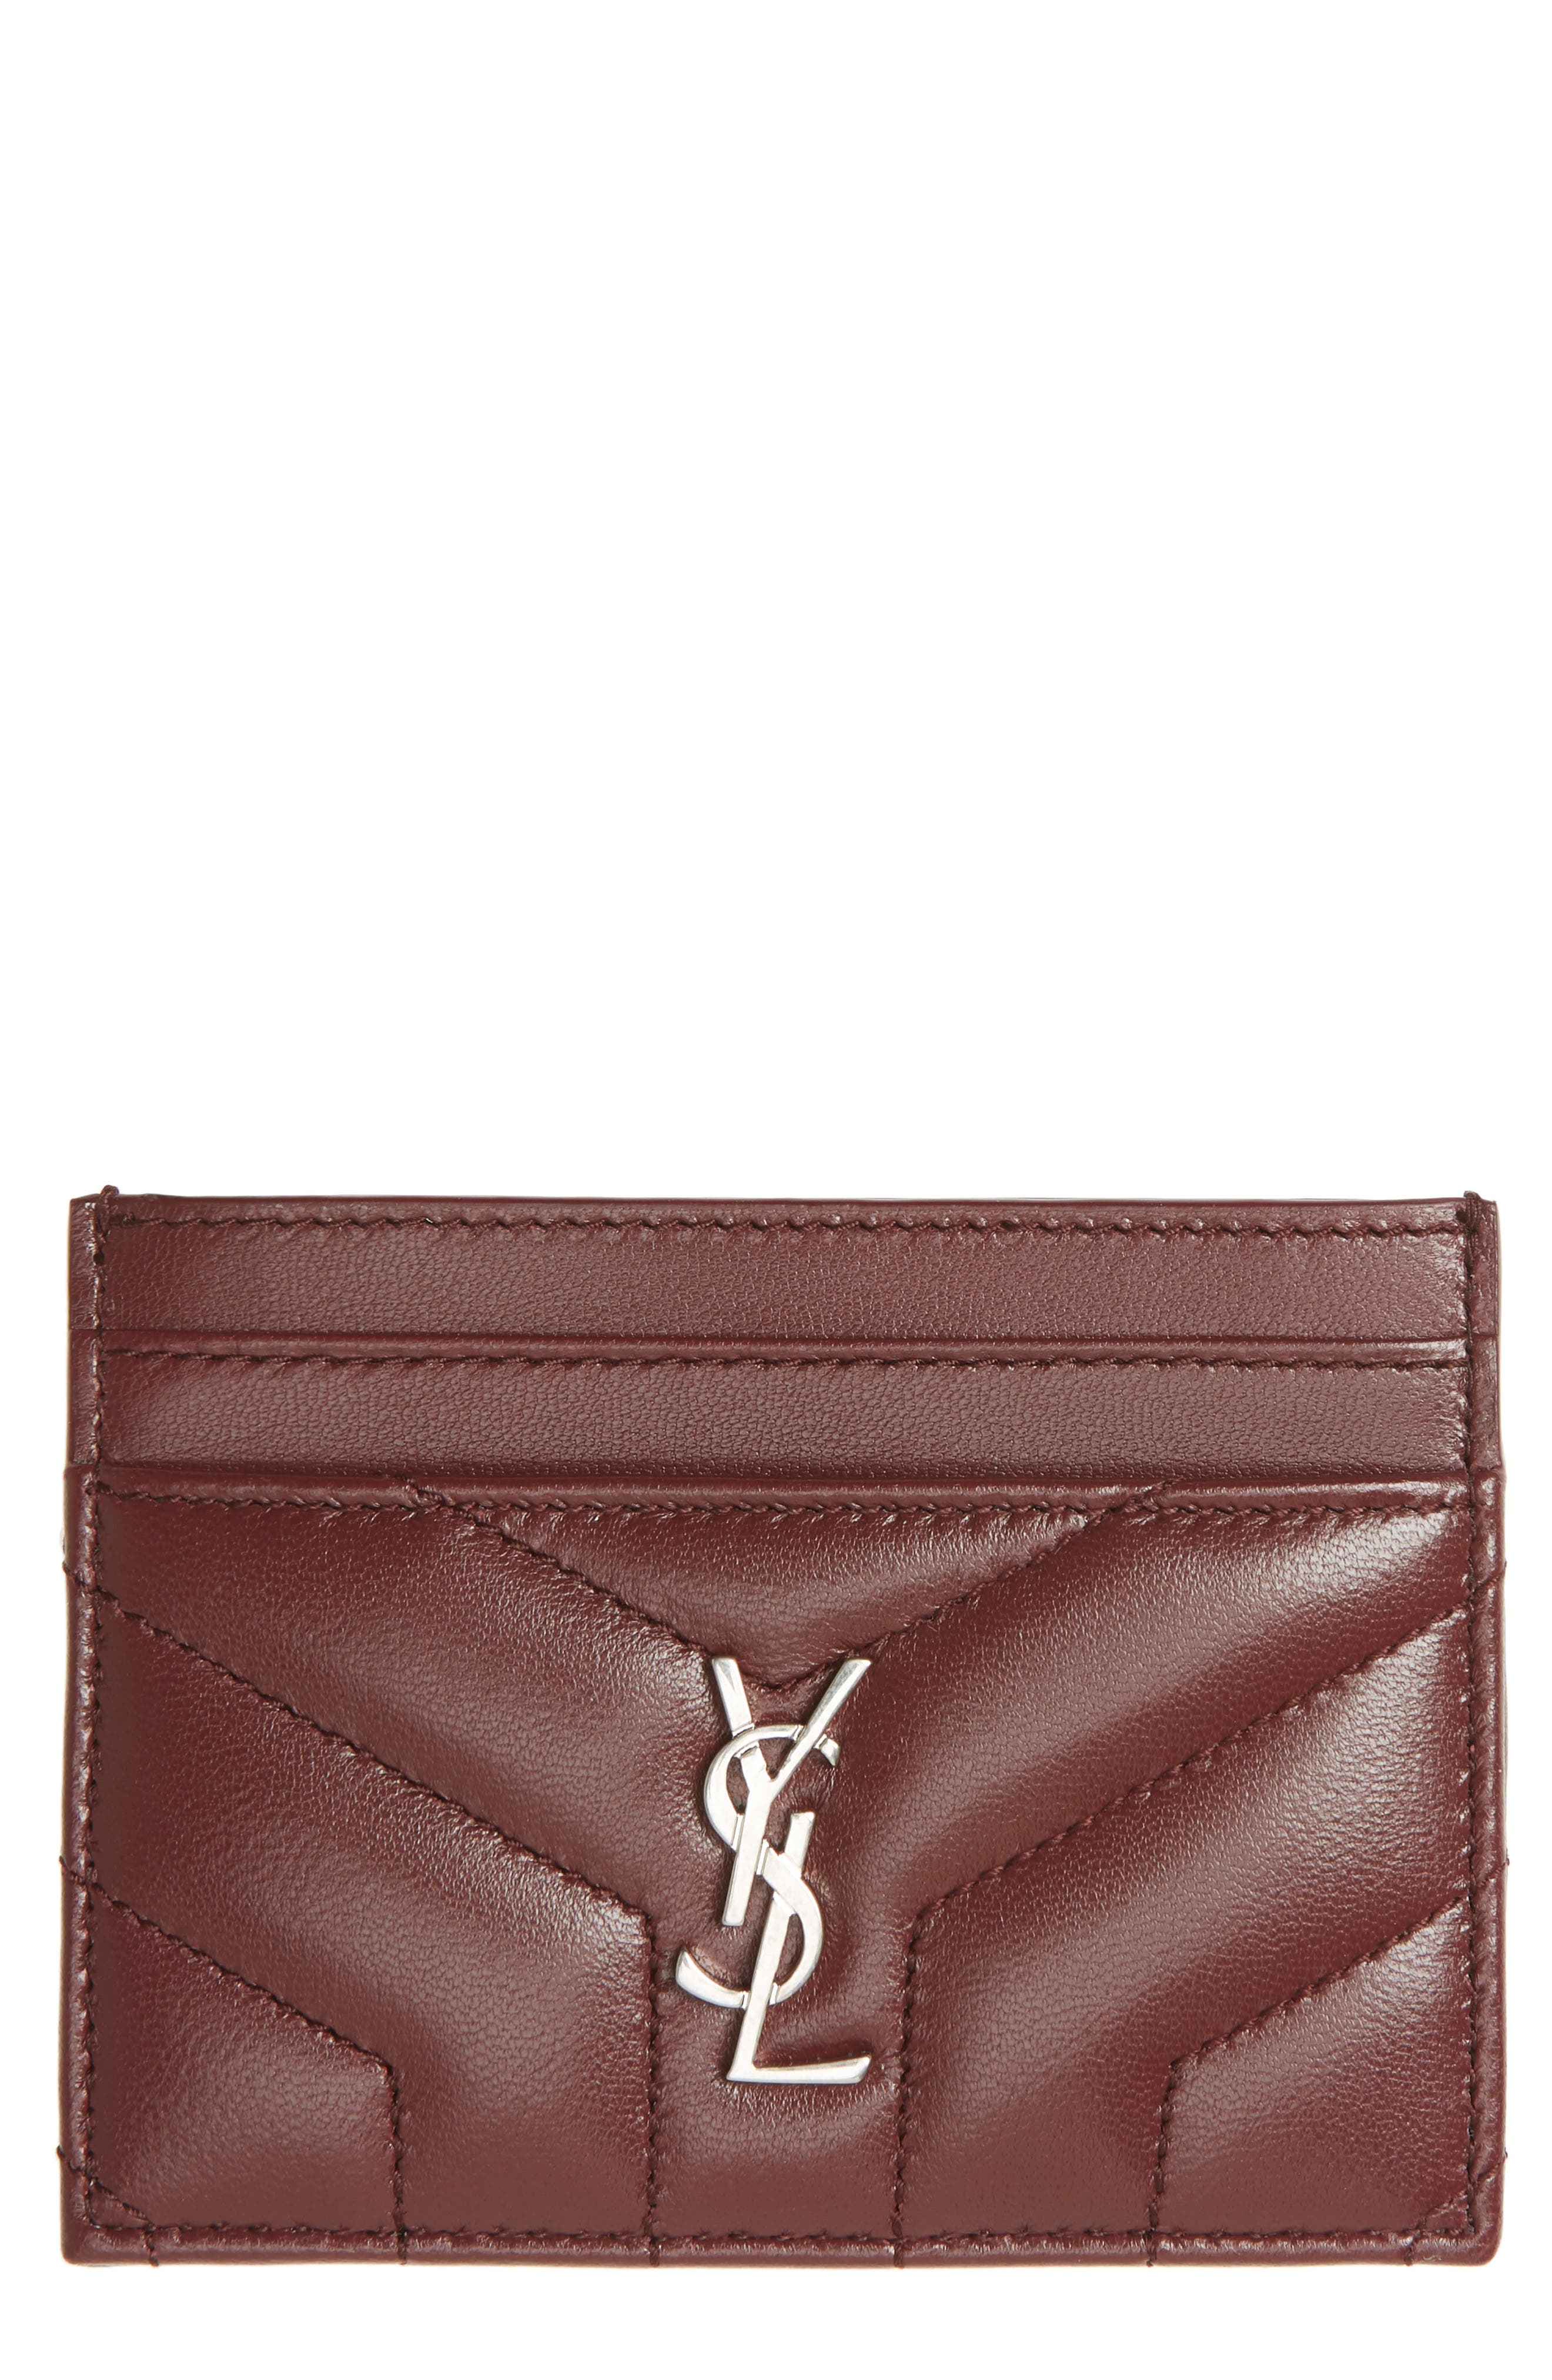 Loulou Monogram Quilted Leather Credit Card Case,                         Main,                         color, Rouge Legion